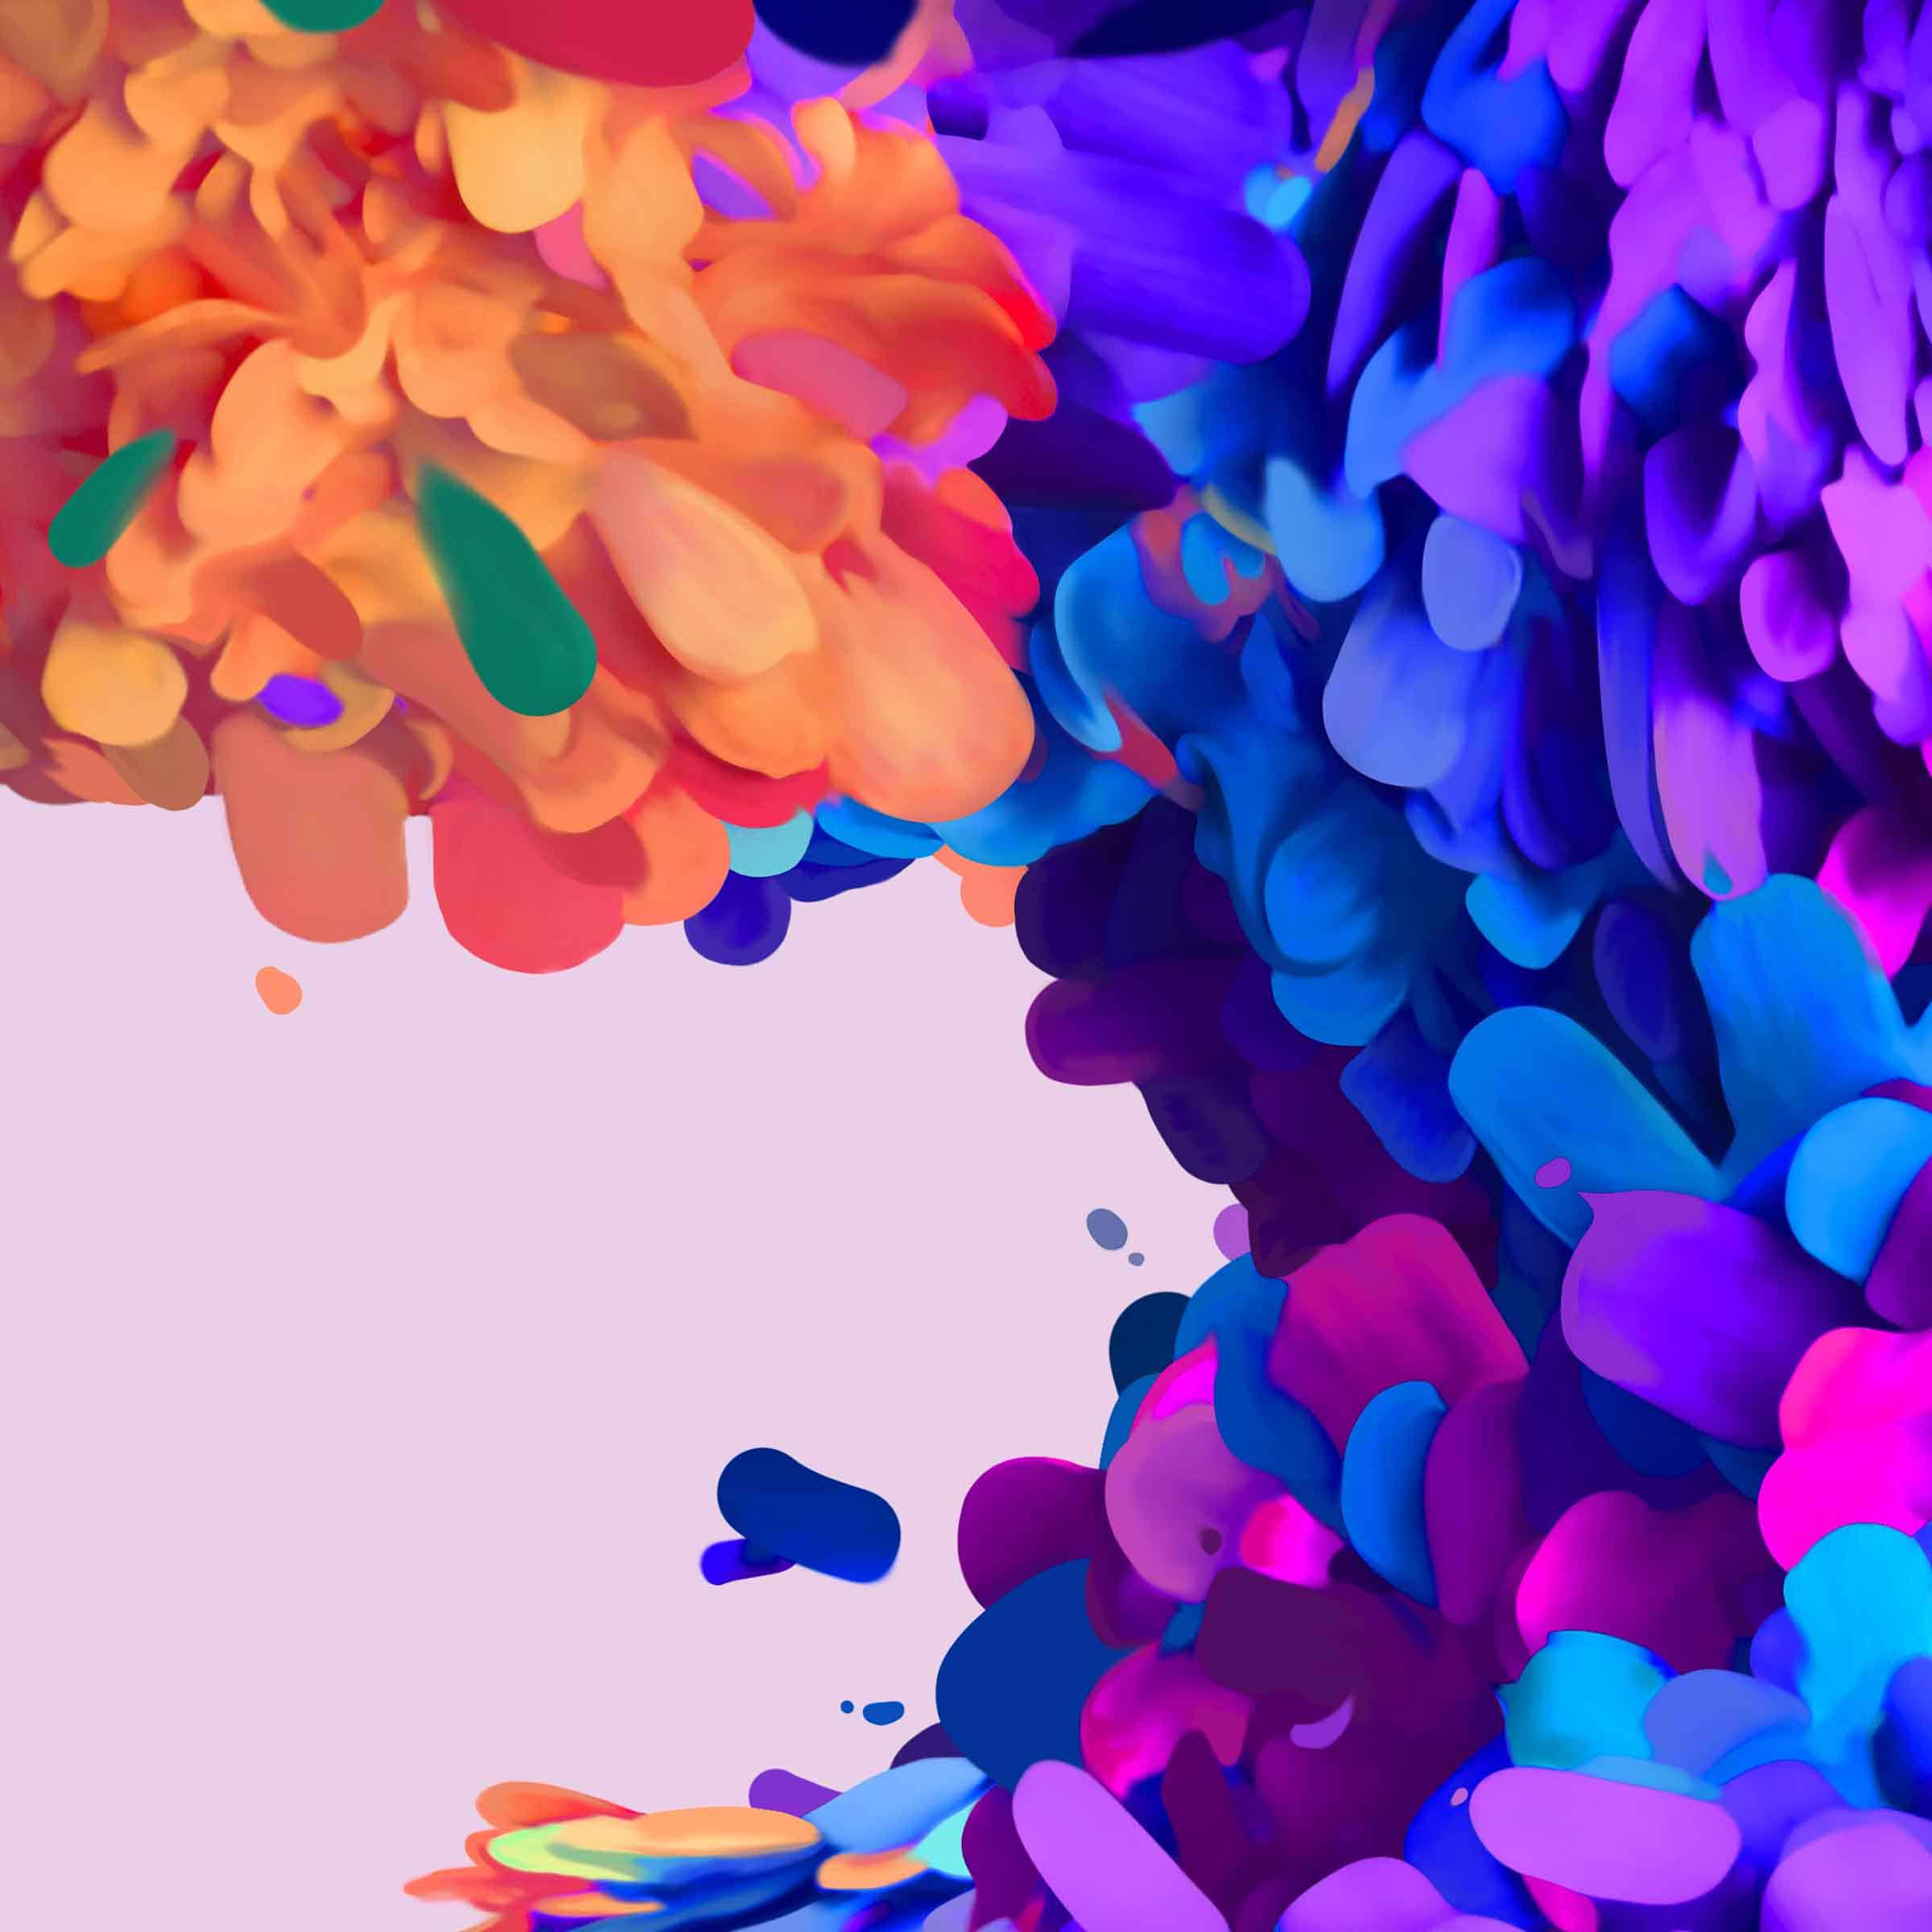 Galaxy S20 FE Wallpapers Compresesed 7